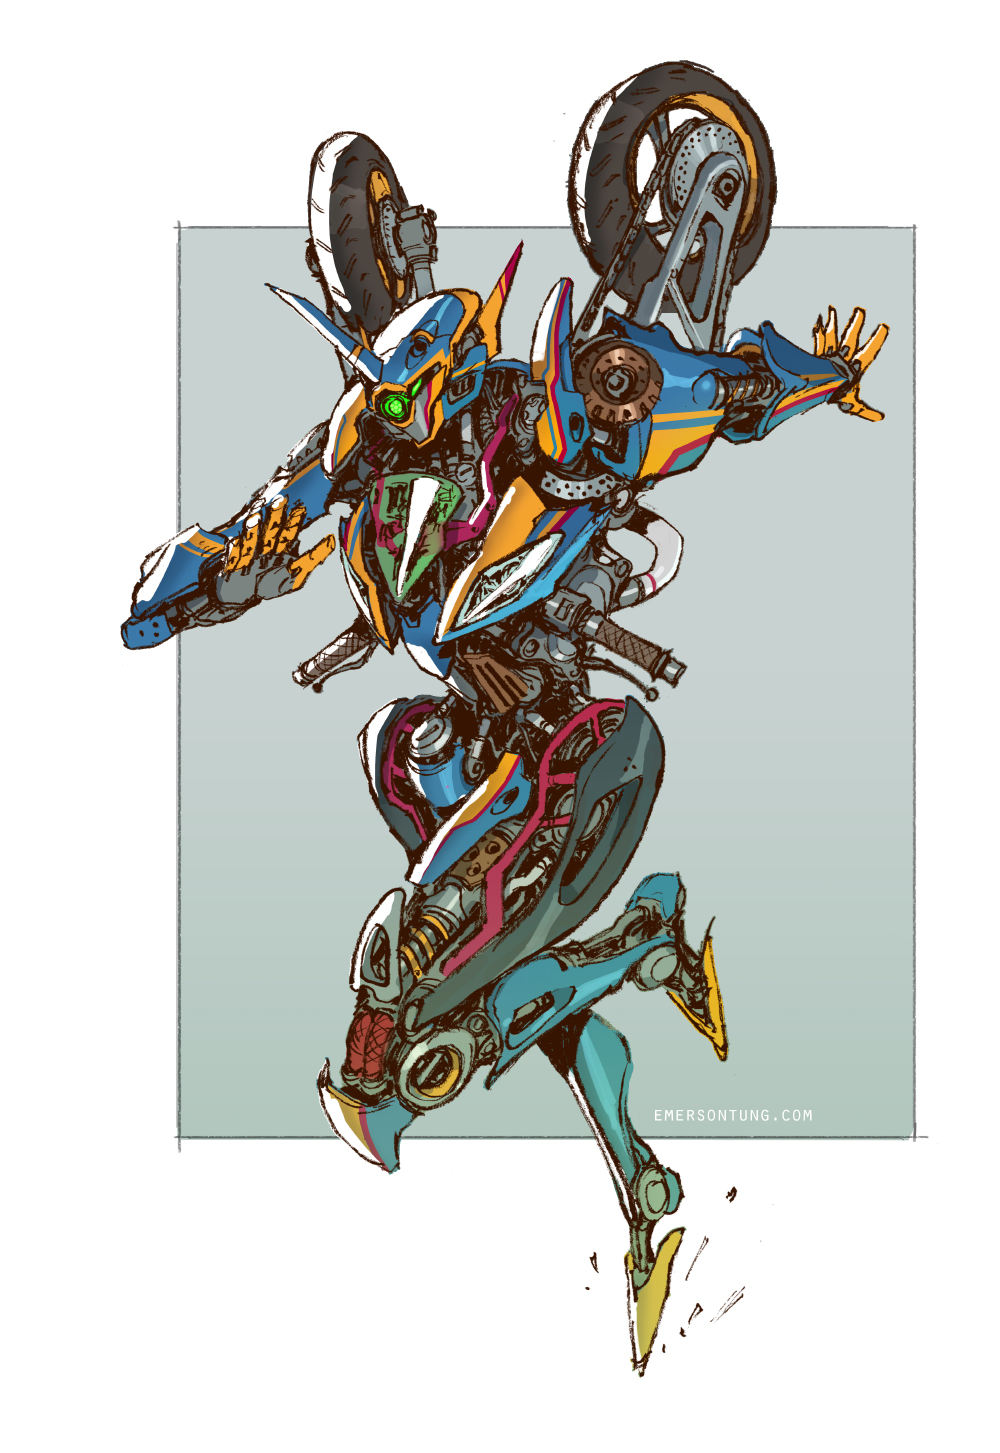 arcee autobot cable commentary debris deviantart_username emerson_tung english_commentary flying handlebar highres jumping machinery mecha original radio_antenna redesign robot science_fiction signature sketch solo tire transformers transformers_animated transformers_prime